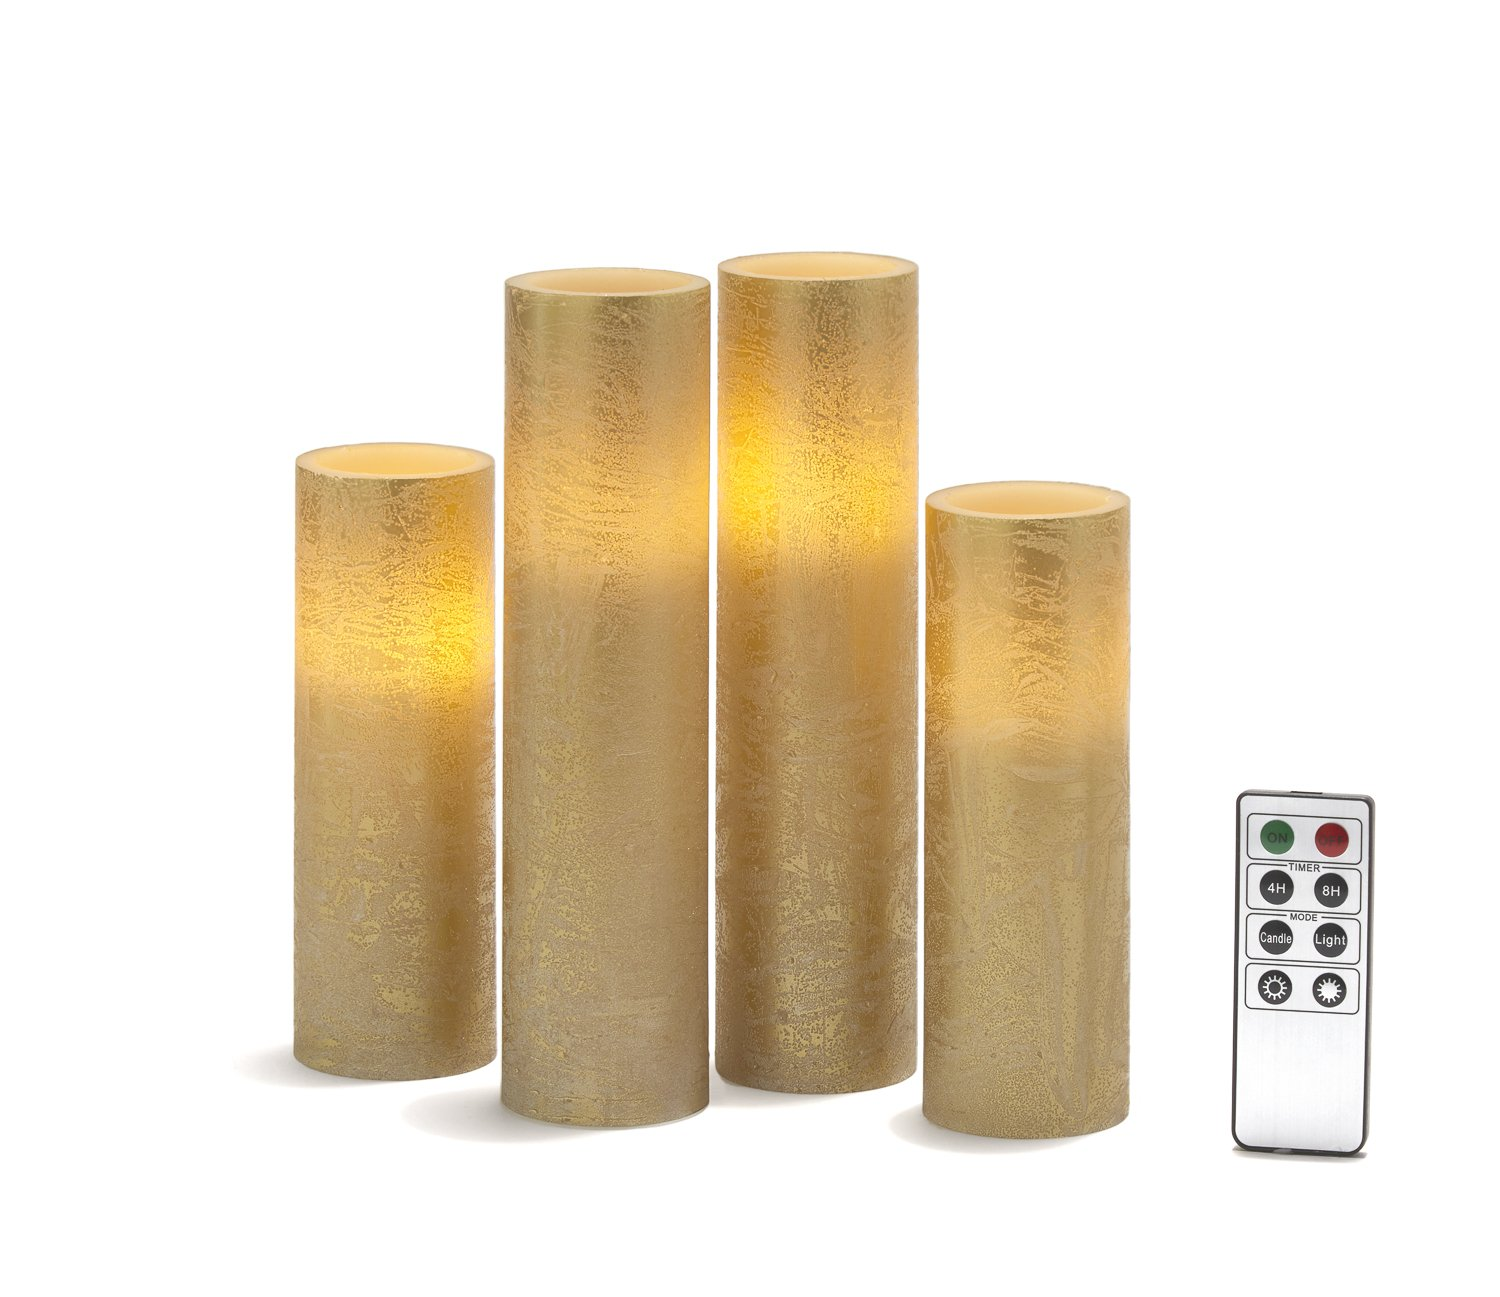 Gold Flameless Pillar Candles - Tall Set of 4, Distressed Textured Wax Finish, White LED Lights, 2'' Diameter, Batteries & Remote Included